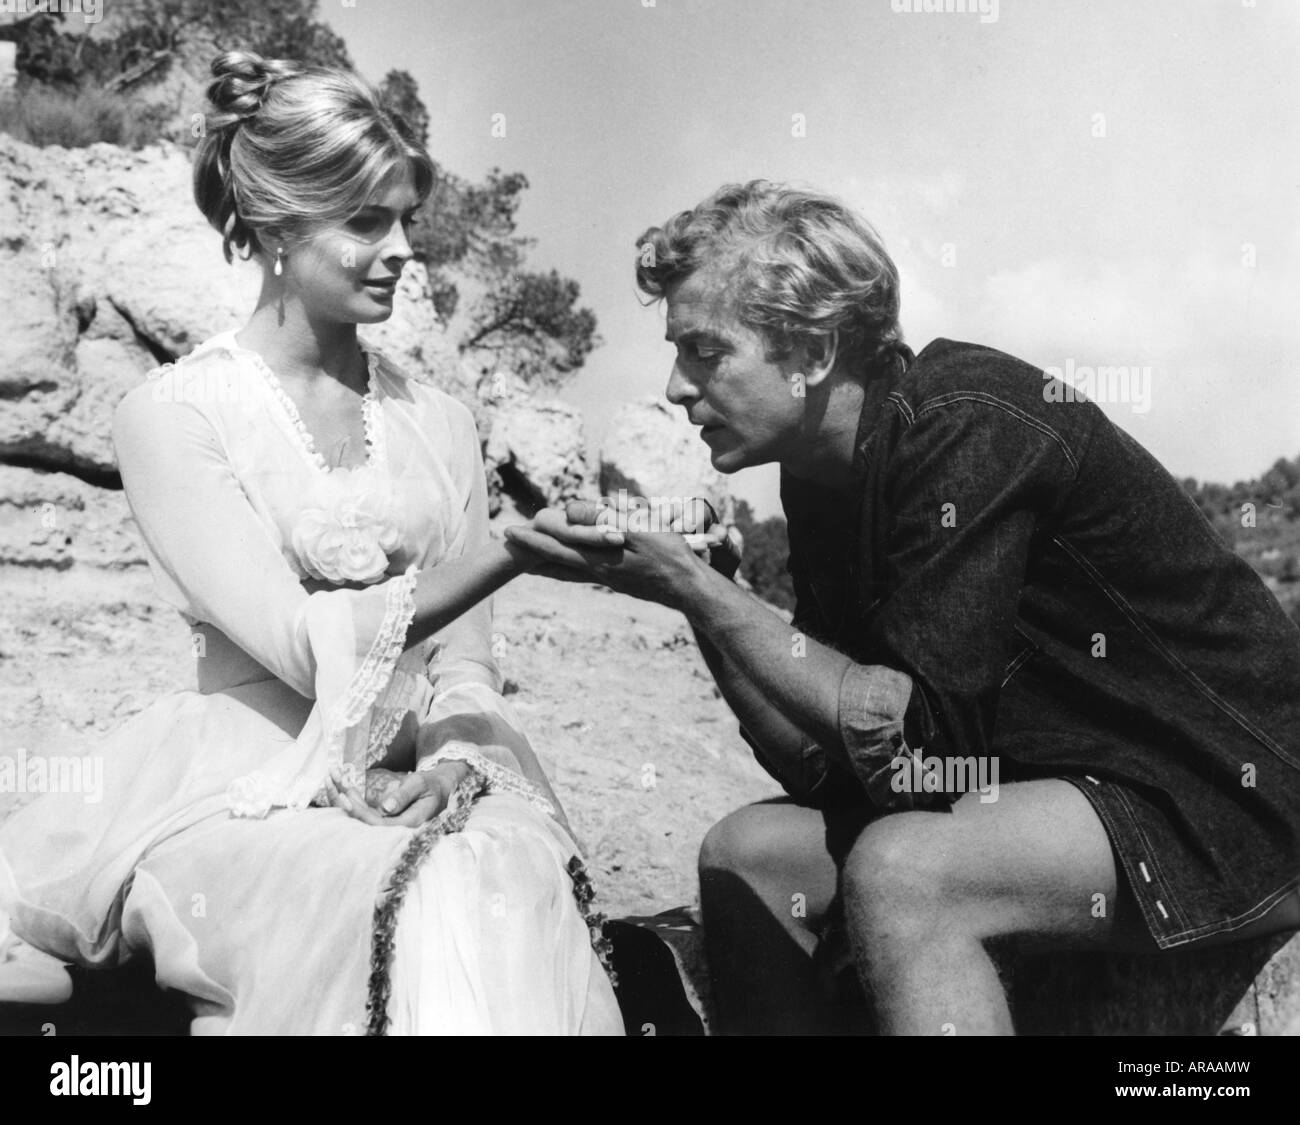 movie, 'The Magus', GBR 1968, director: Guy Green, scene with: Candice Bergen and Michael Caine, Third-Party - Stock Image